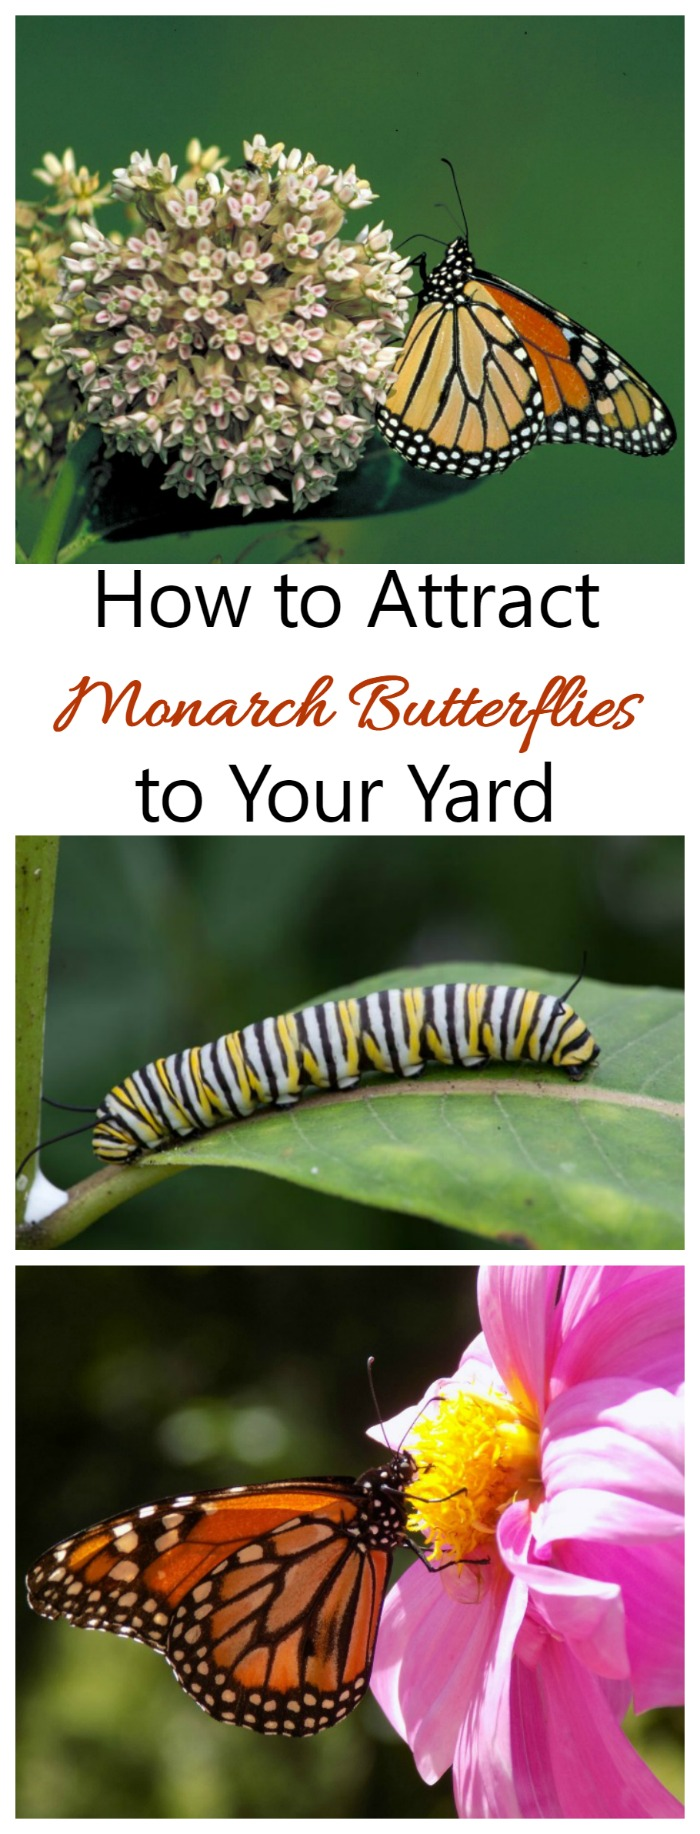 Monarch butterflies are on a sharp decline nationwide. But there are somethings that you can do to help make sure they don't end up on the endangered list.